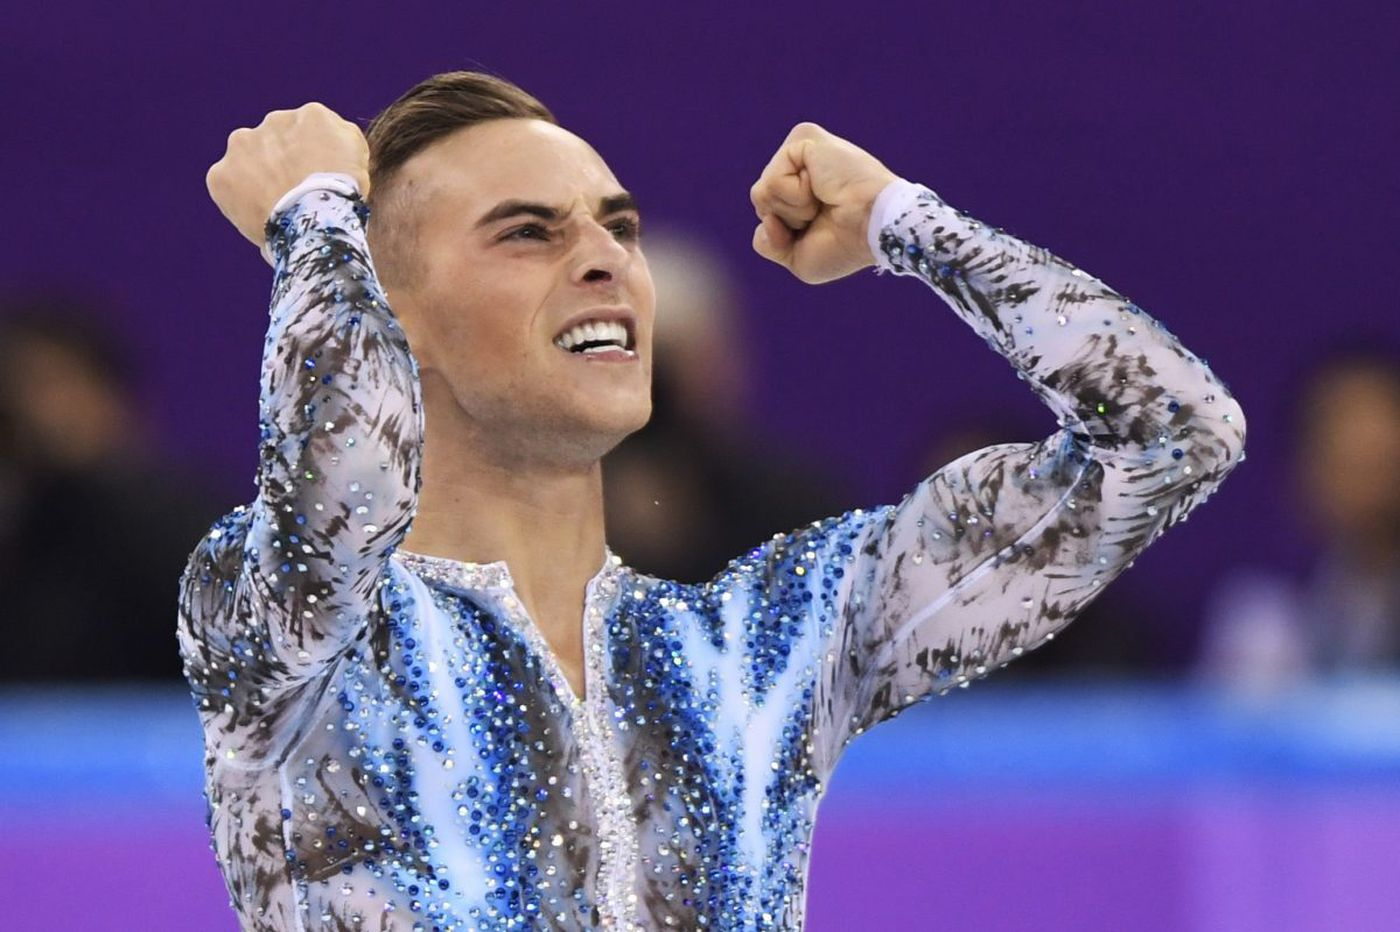 Olympian Adam Rippon gives fans a taste of skating commentary after declining NBC offer